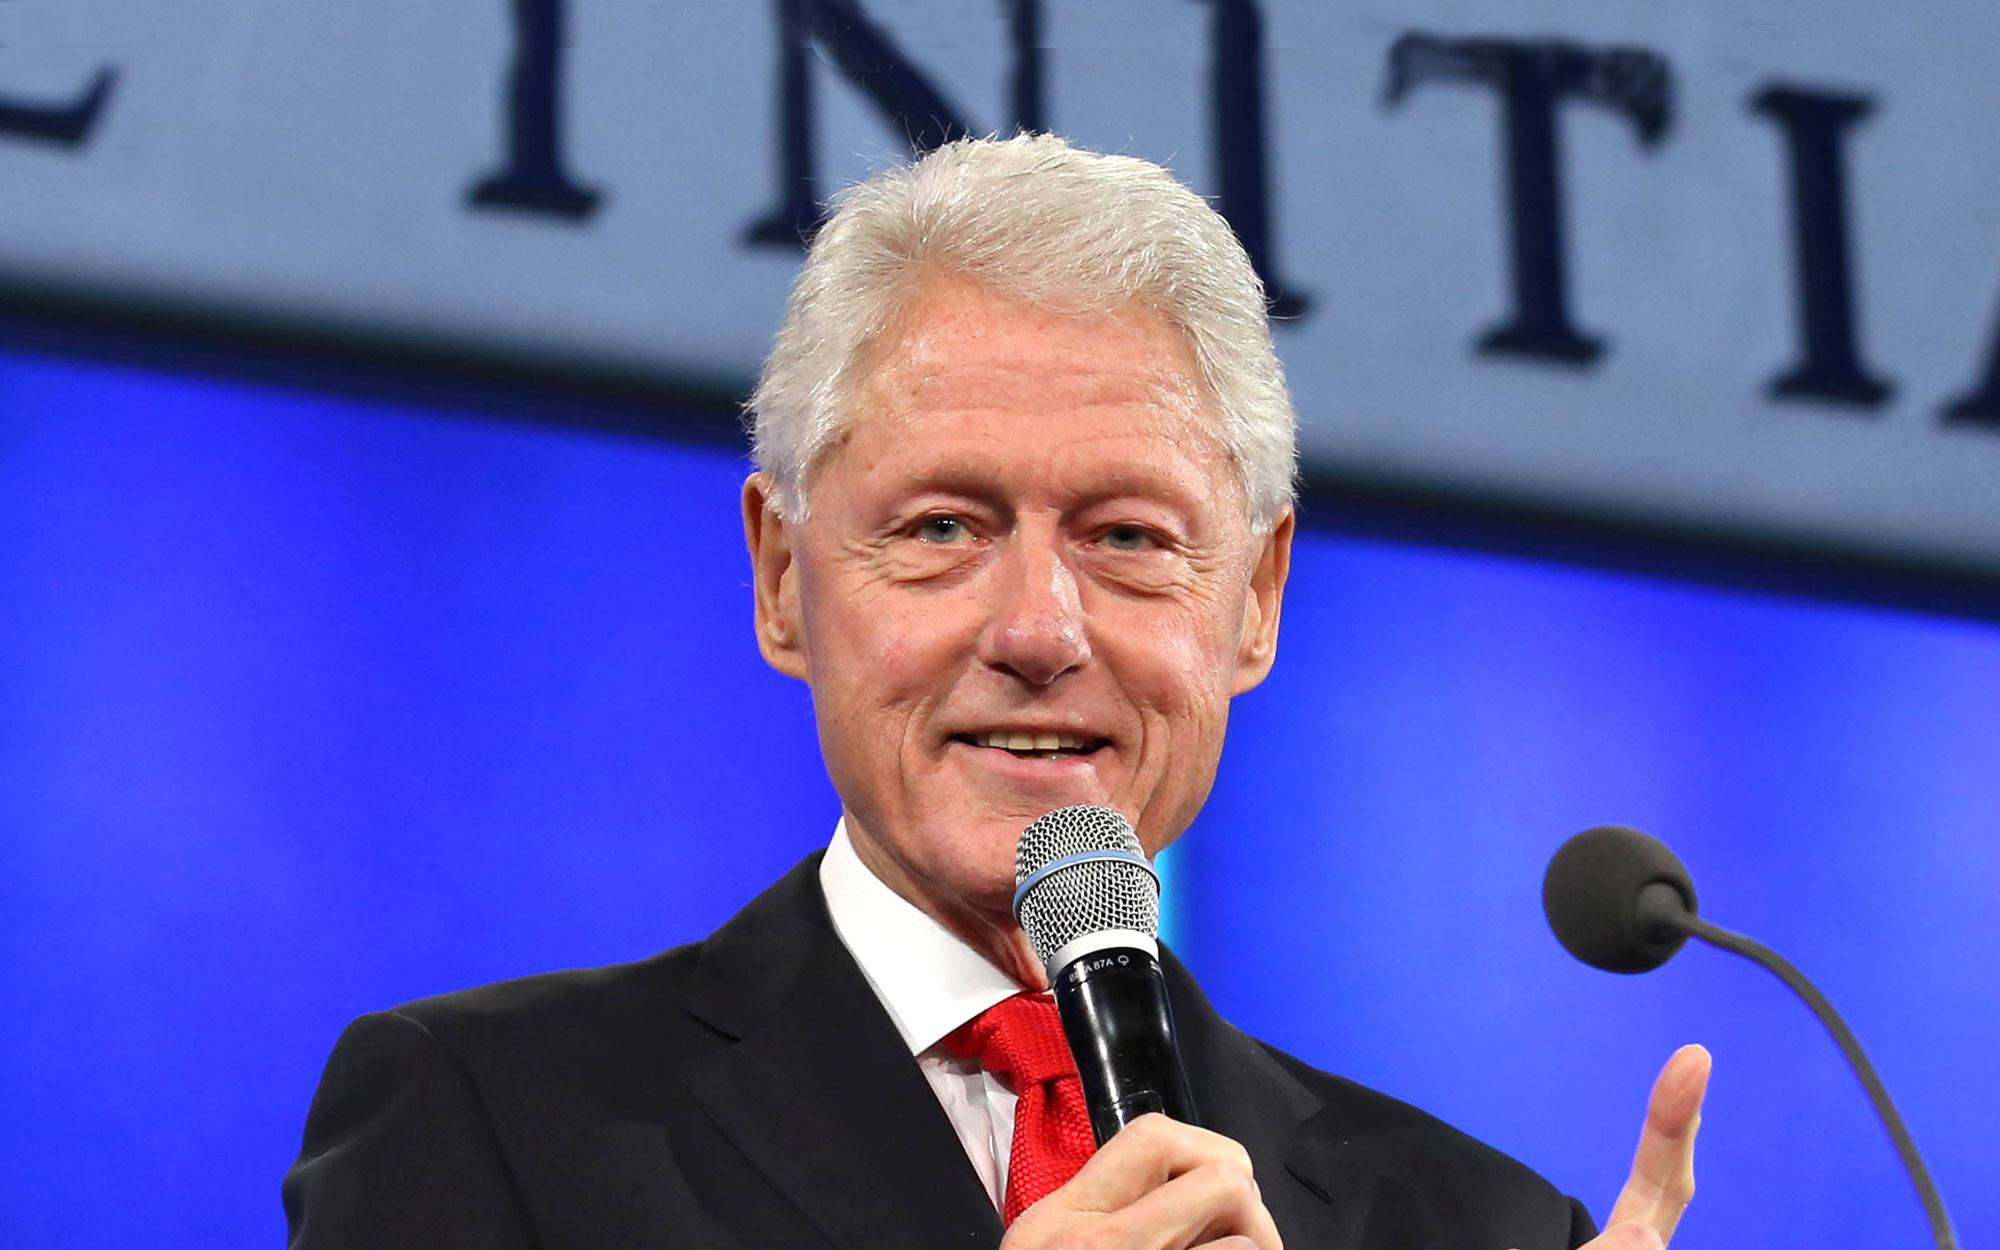 It Seems Bill Clinton Was Not Being Truthful About His Dealings with Jeffrey Epstein